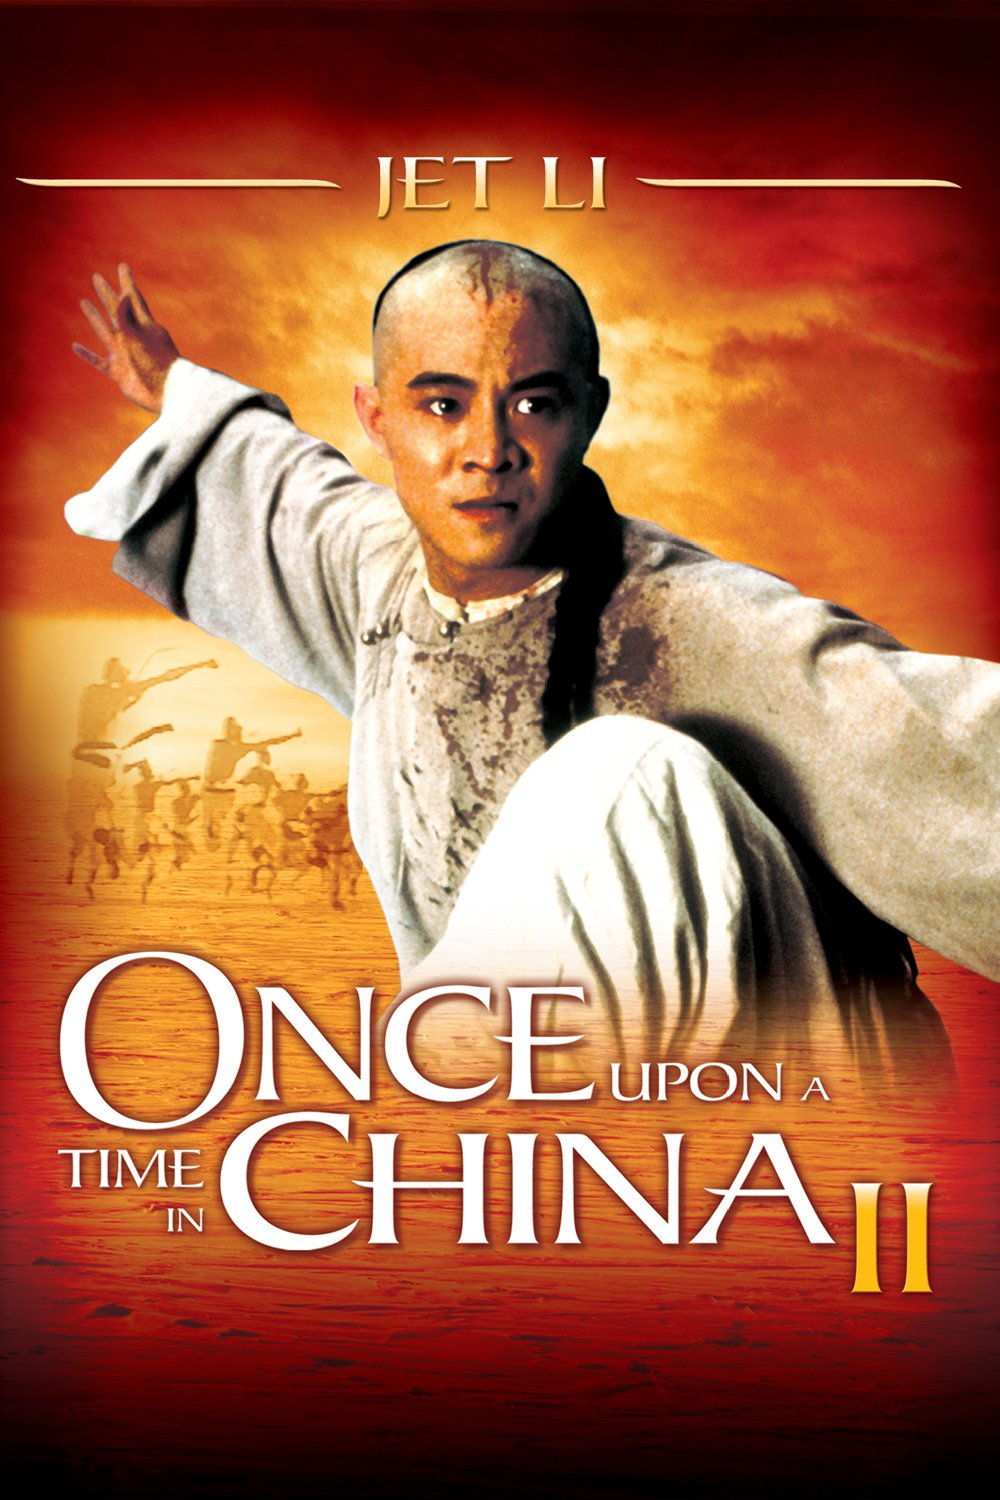 Once Upon a Time in China II kapak